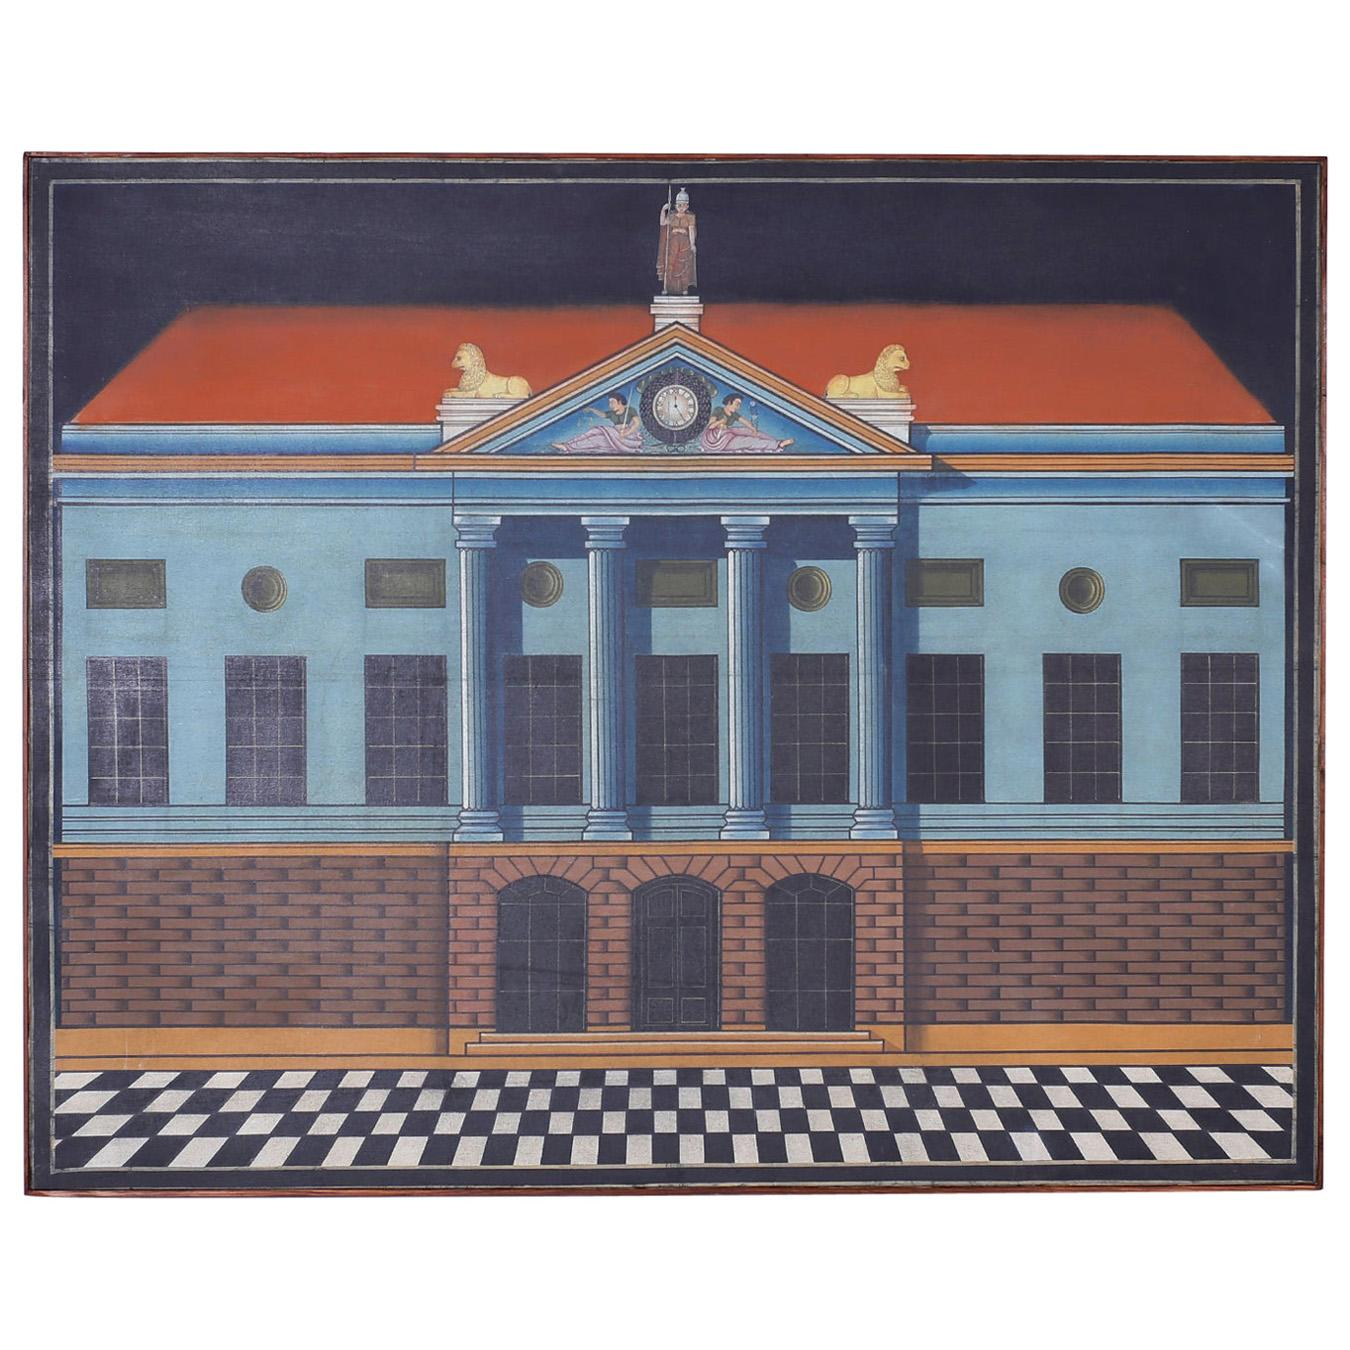 Architectural Acrylic Painting on Canvas